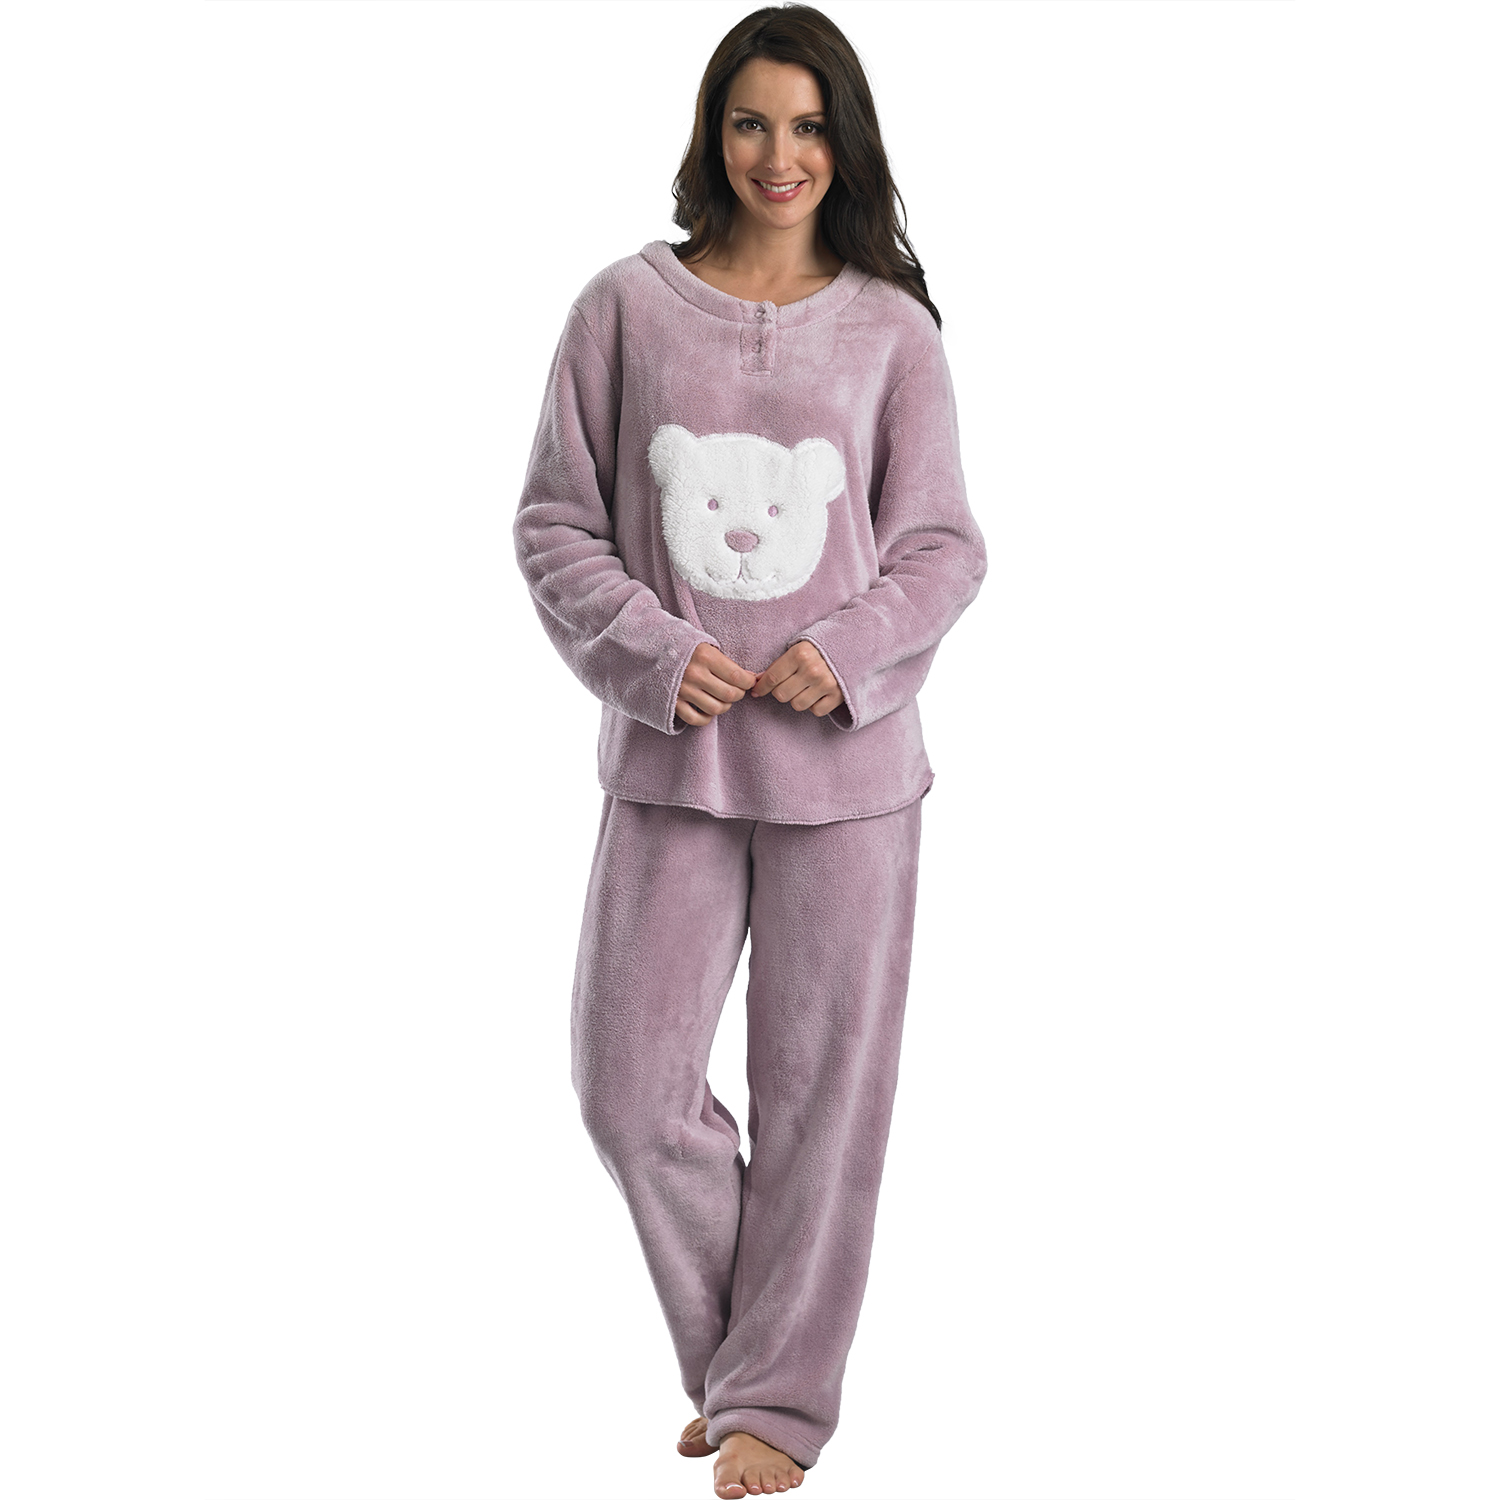 Matalan range of mix and match nightwear. Matalan range of mix and match nightwear. Womens Special Buys Family Polar Bear Christmas Pyjama Set. £ View Family Checklist Christmas Pyjama Set. £ View Christmas Tree Pyjama Gift Set.